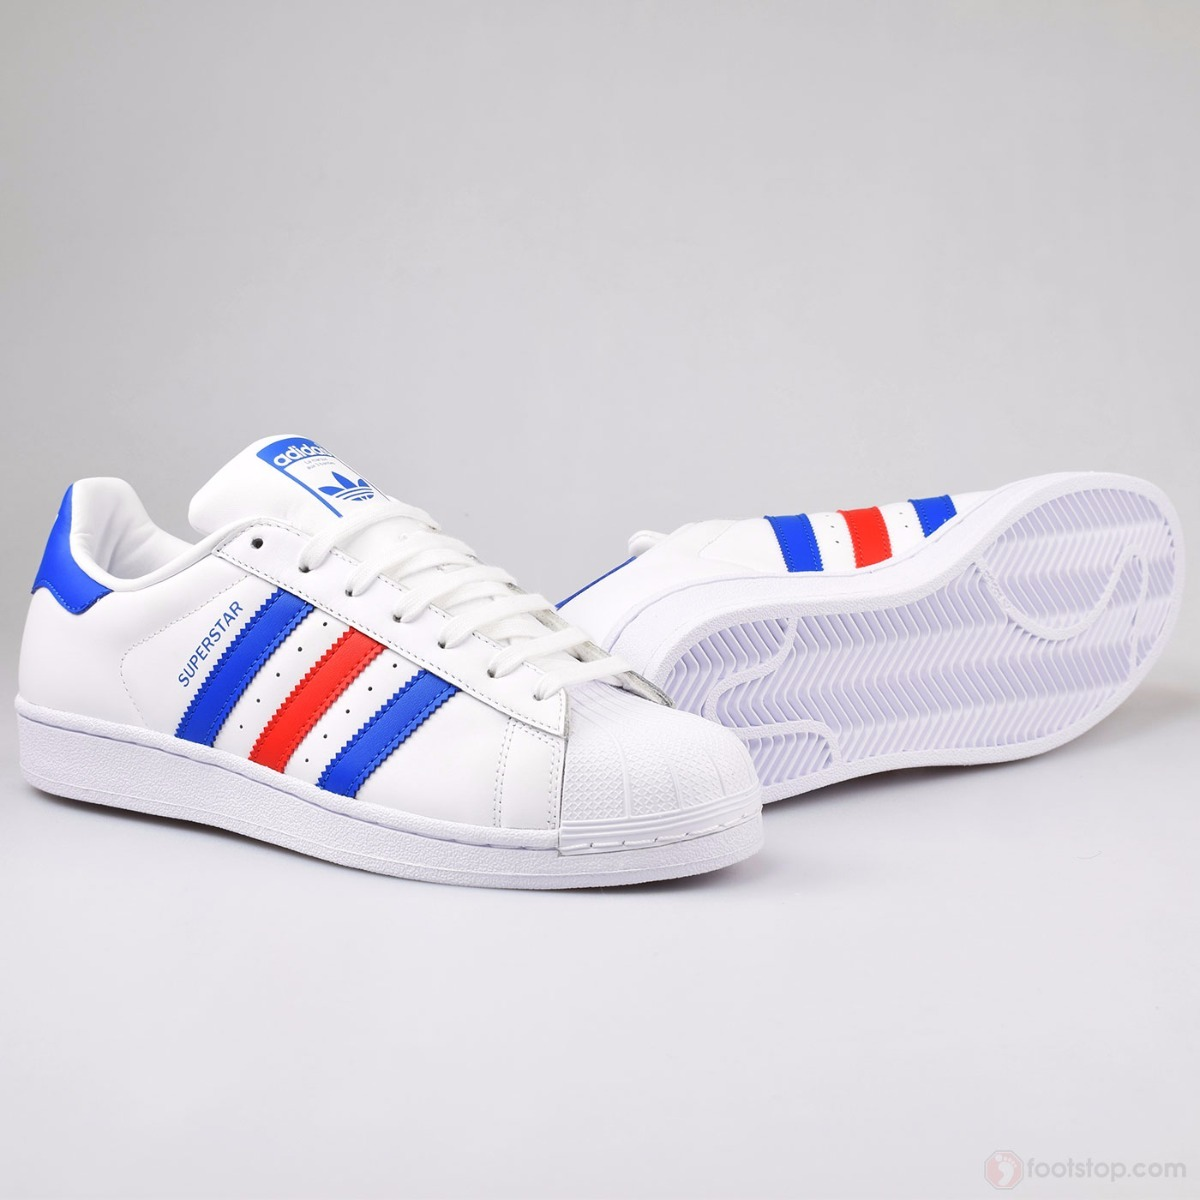 Concha Envió Gratis Adidas Multicolor Tenis Blanco Superstar wWU8IS